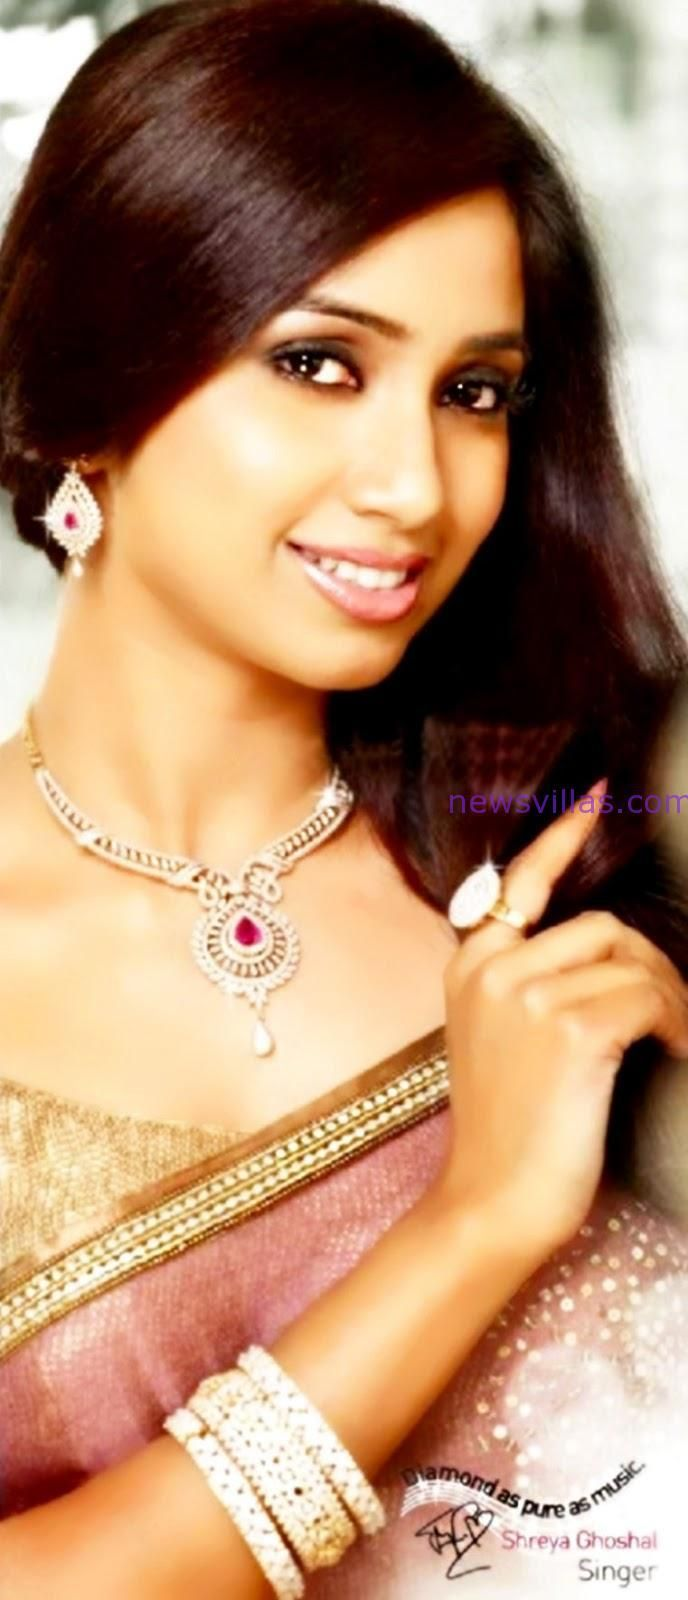 16 Best Images About Shreya On Pinterest  Words, Chic And -6774